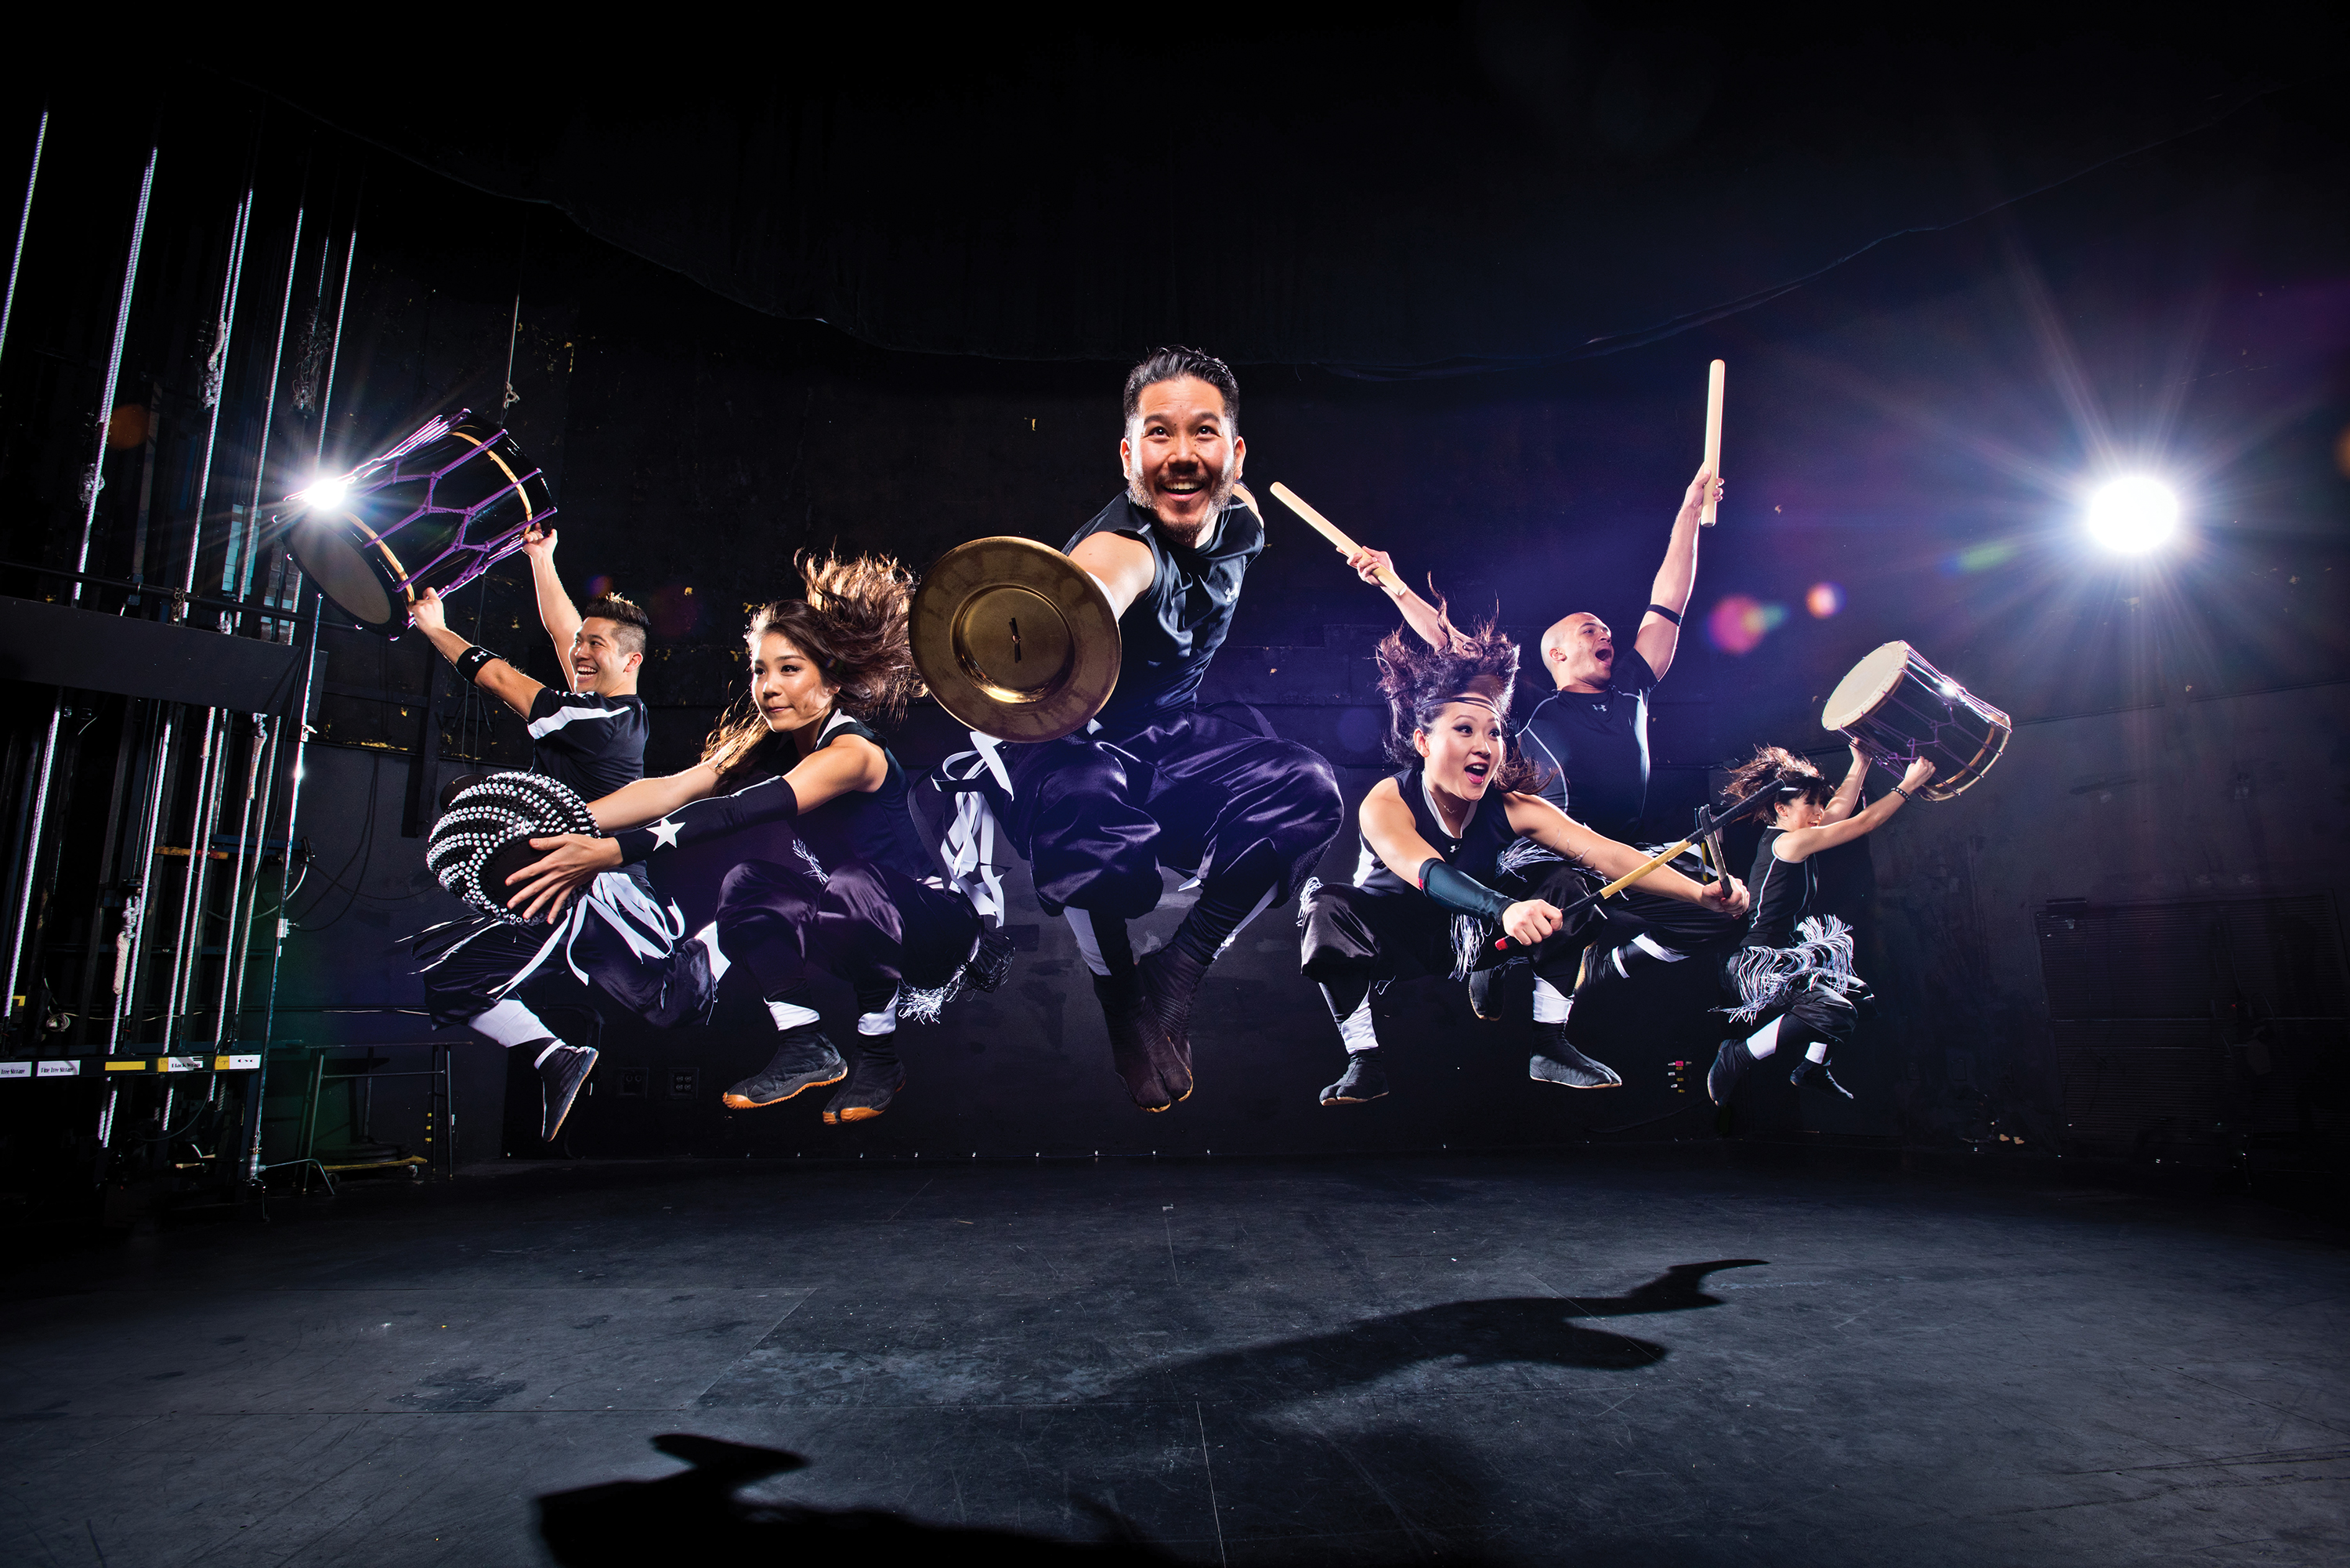 Taikoproject to bring energetic show to Lied | Nebraska ...